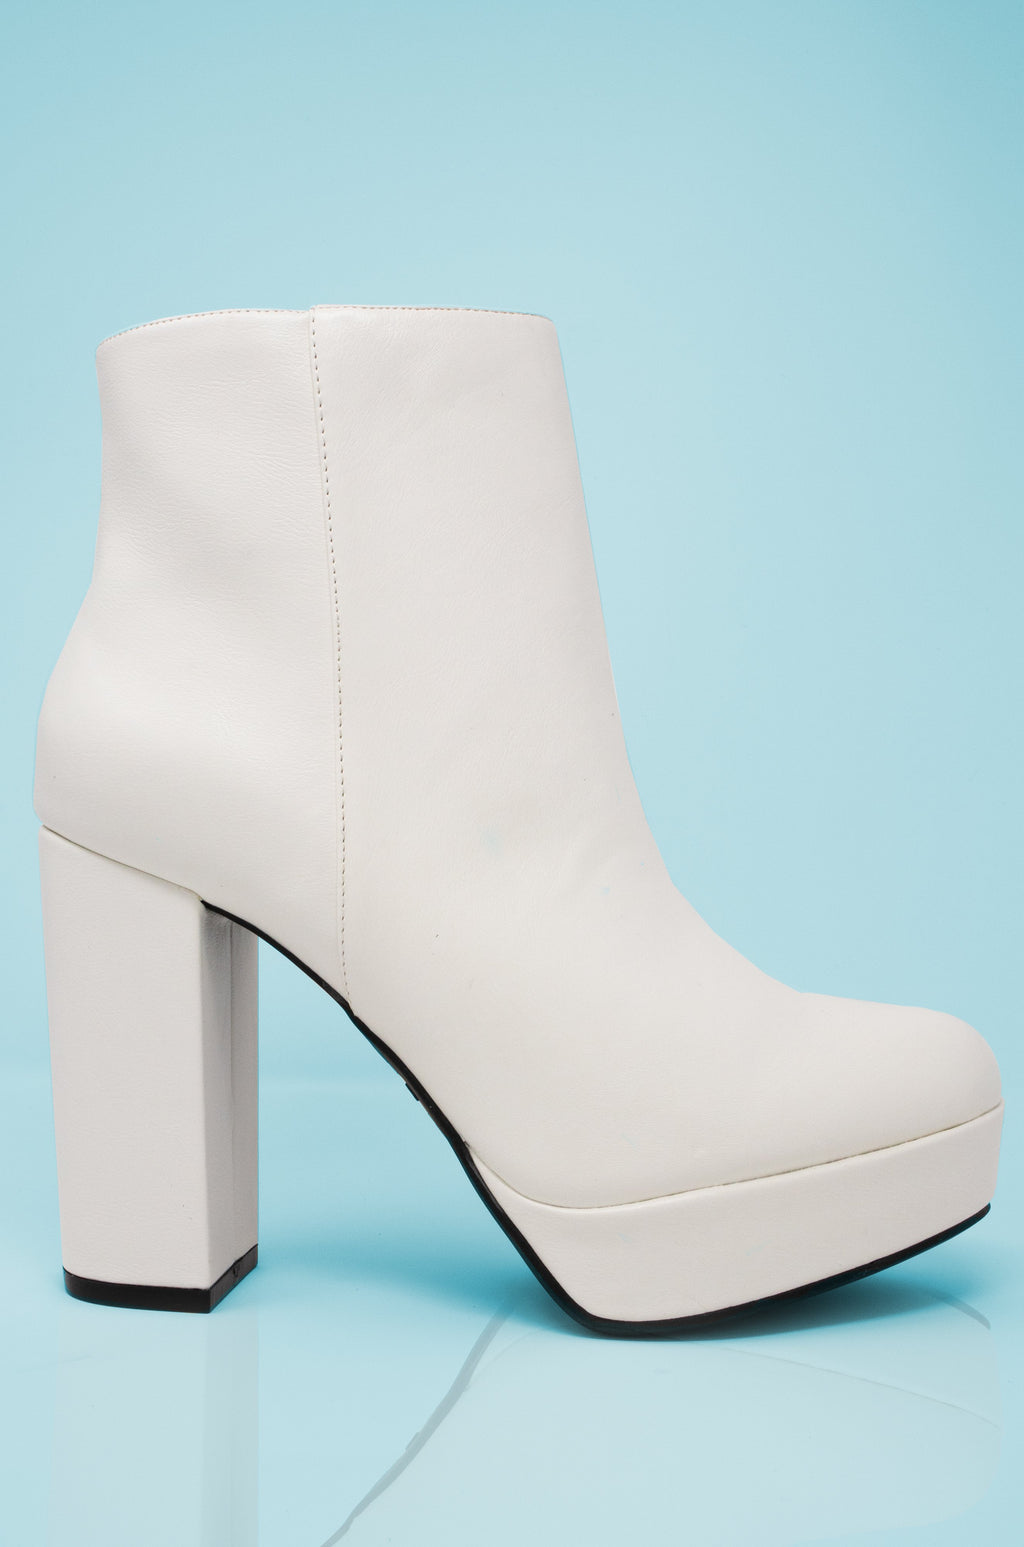 Envy - White Platform Heeled Booties